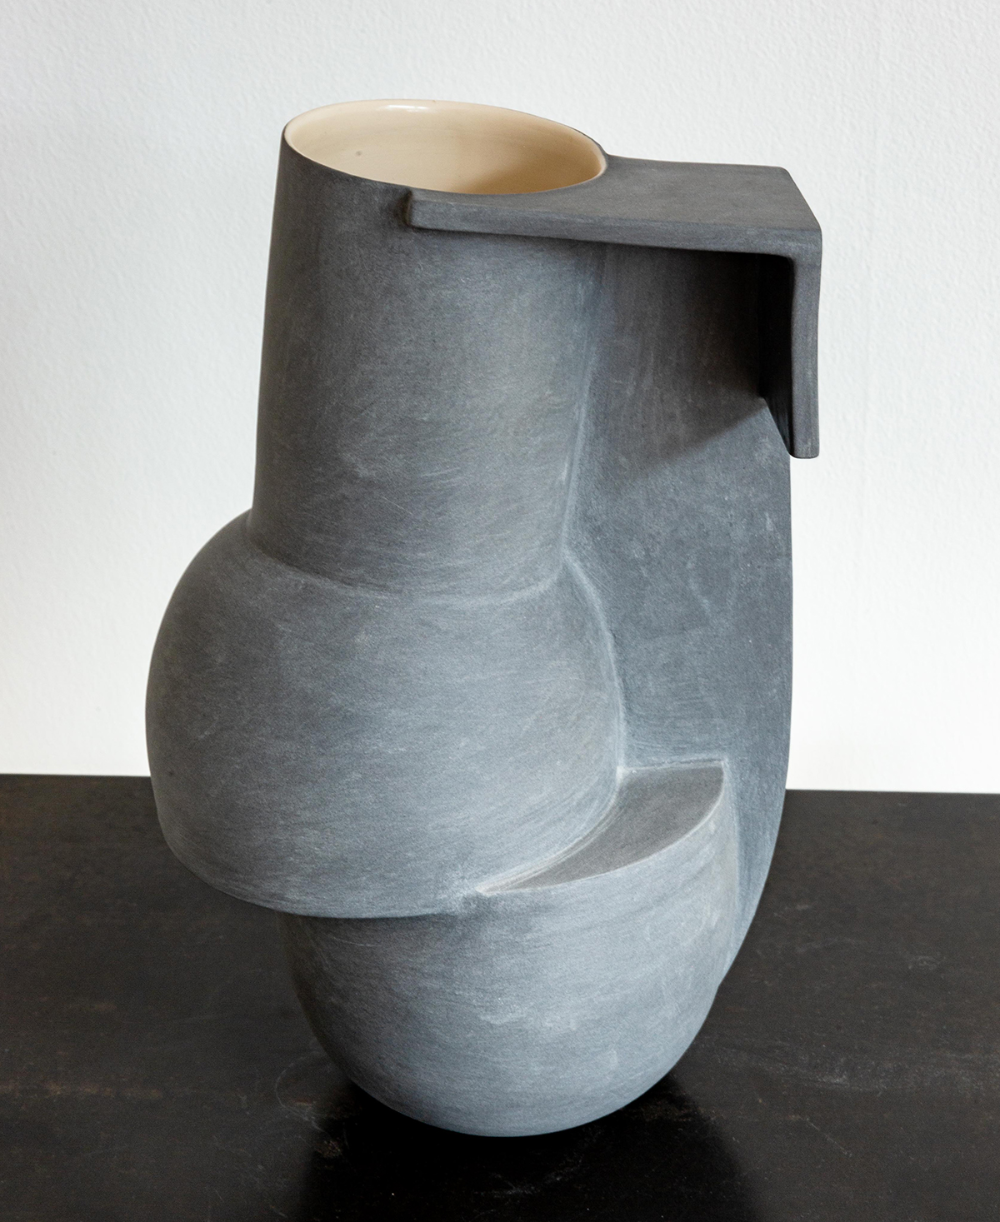 A London Exhibition Contrasts Jochen Holz S Blobby Glass Objects With Linear Ceramics By Derek Wilson Sight Unseen In 2020 Objects Exhibition Wirth